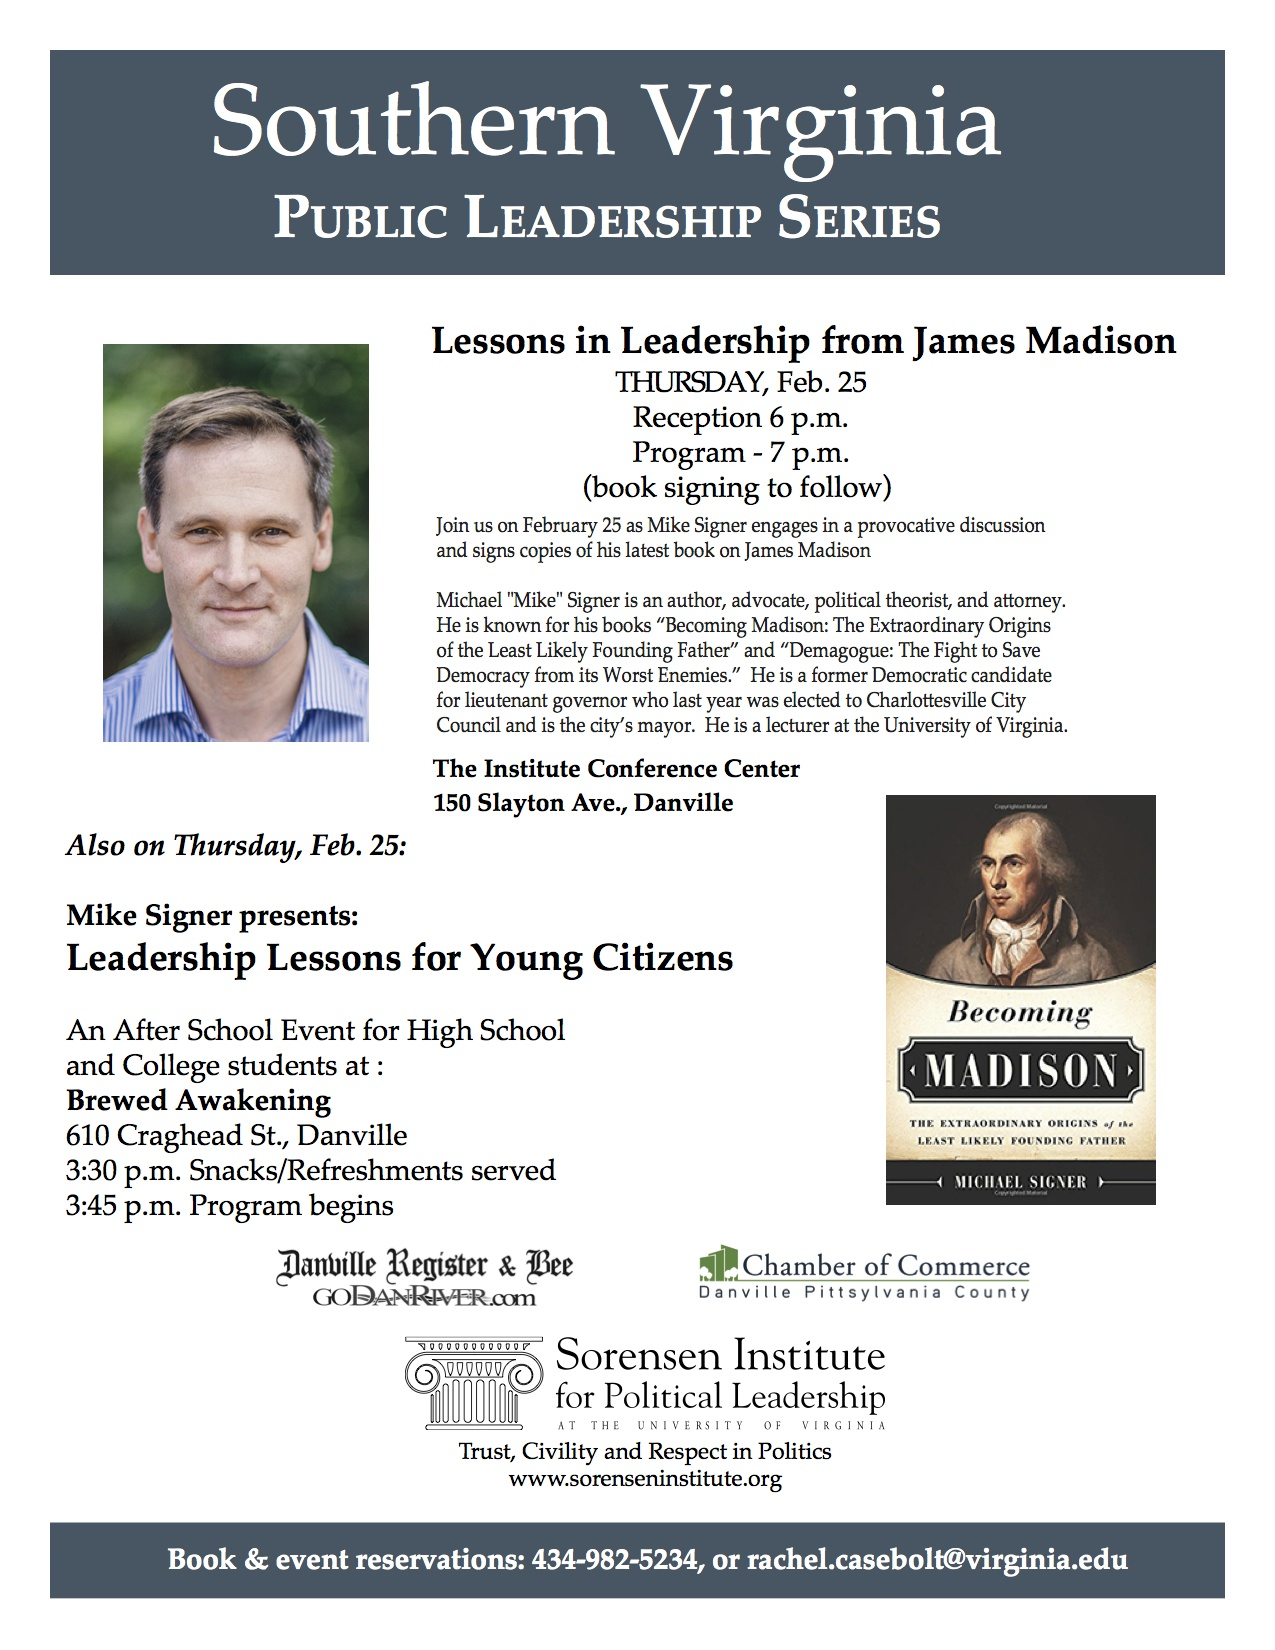 Southern Virginia Public Leadership Series: Lessons in Leadership